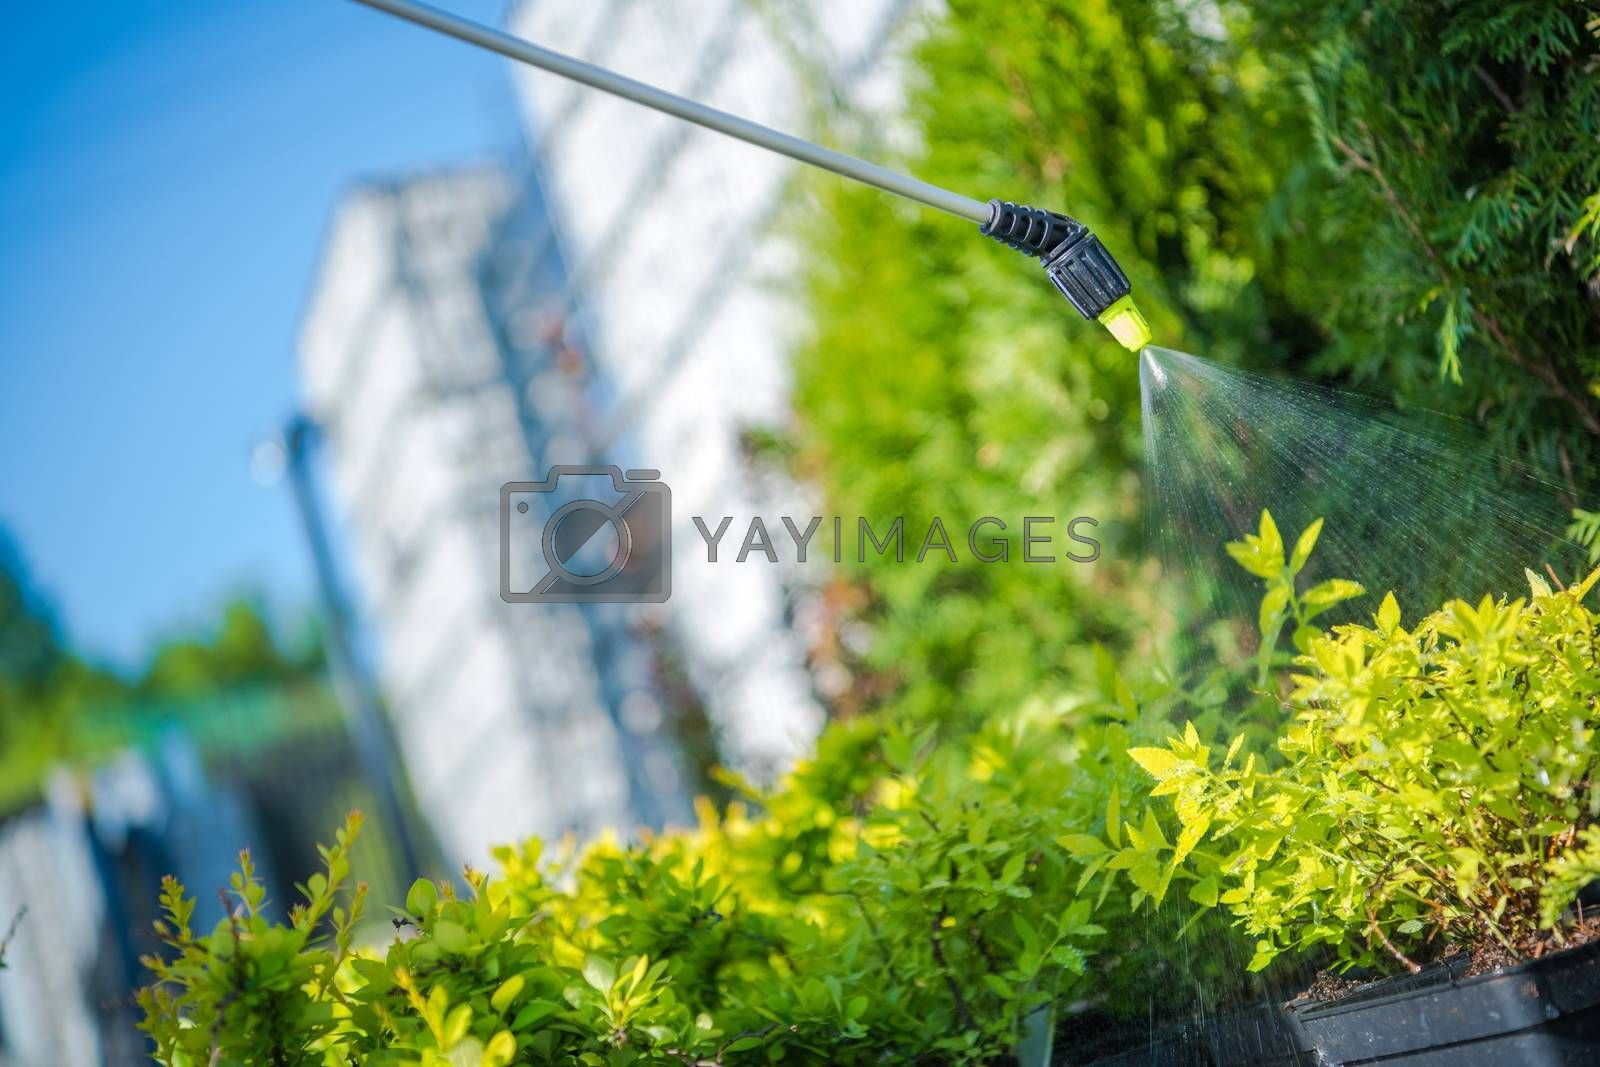 Royalty free image of Garden Plants Insecticide by welcomia